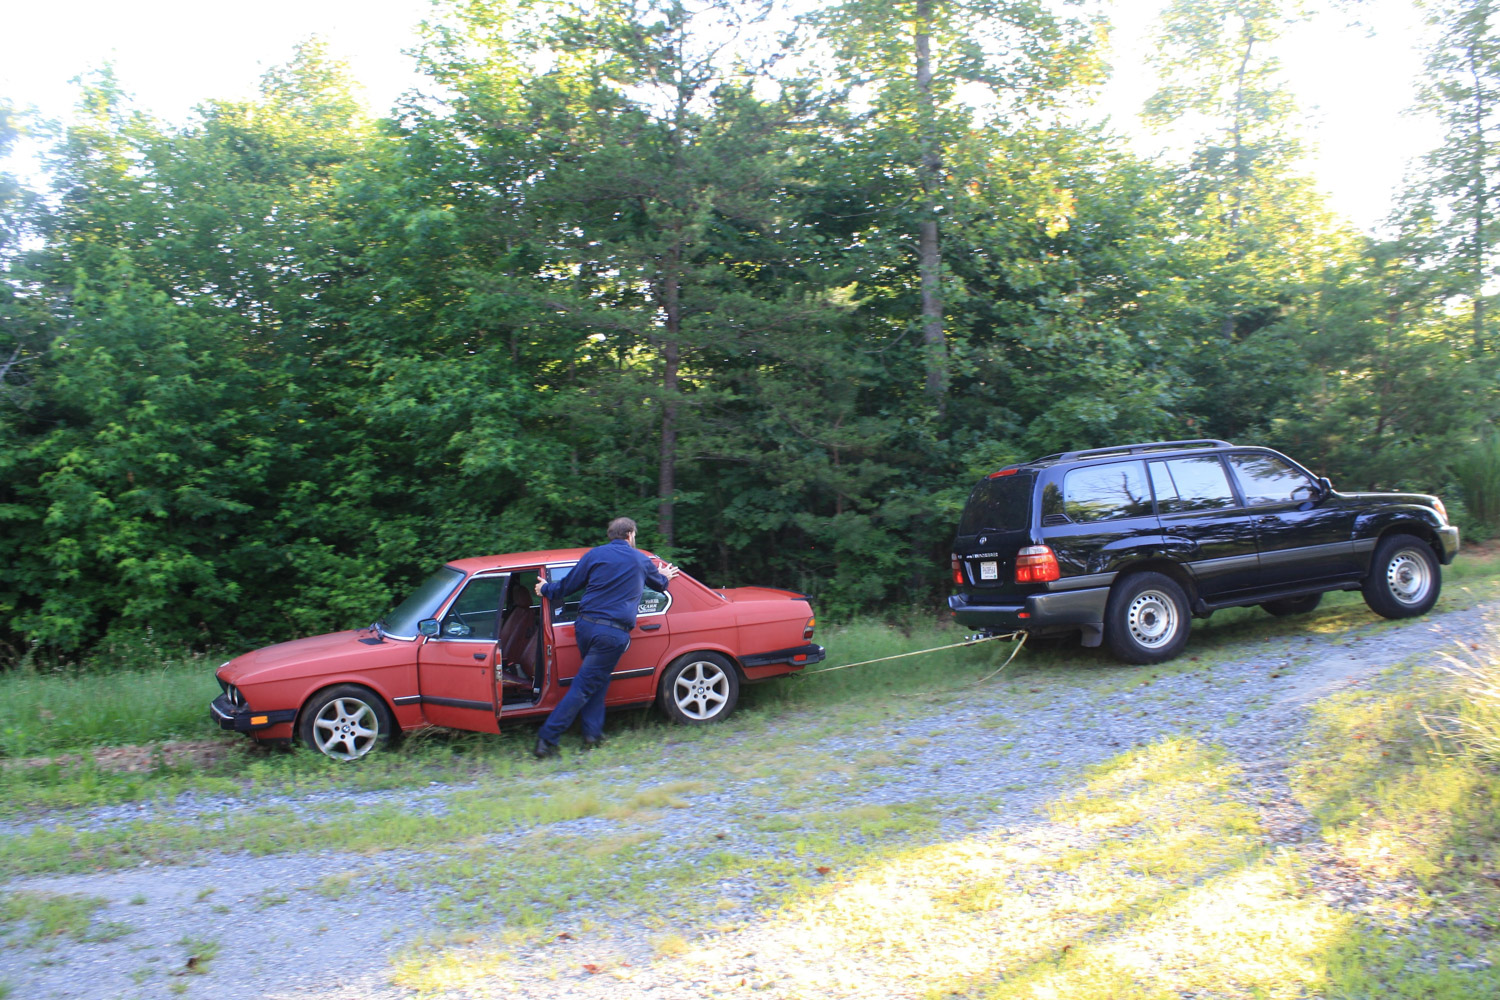 towing derelict bmw up hill